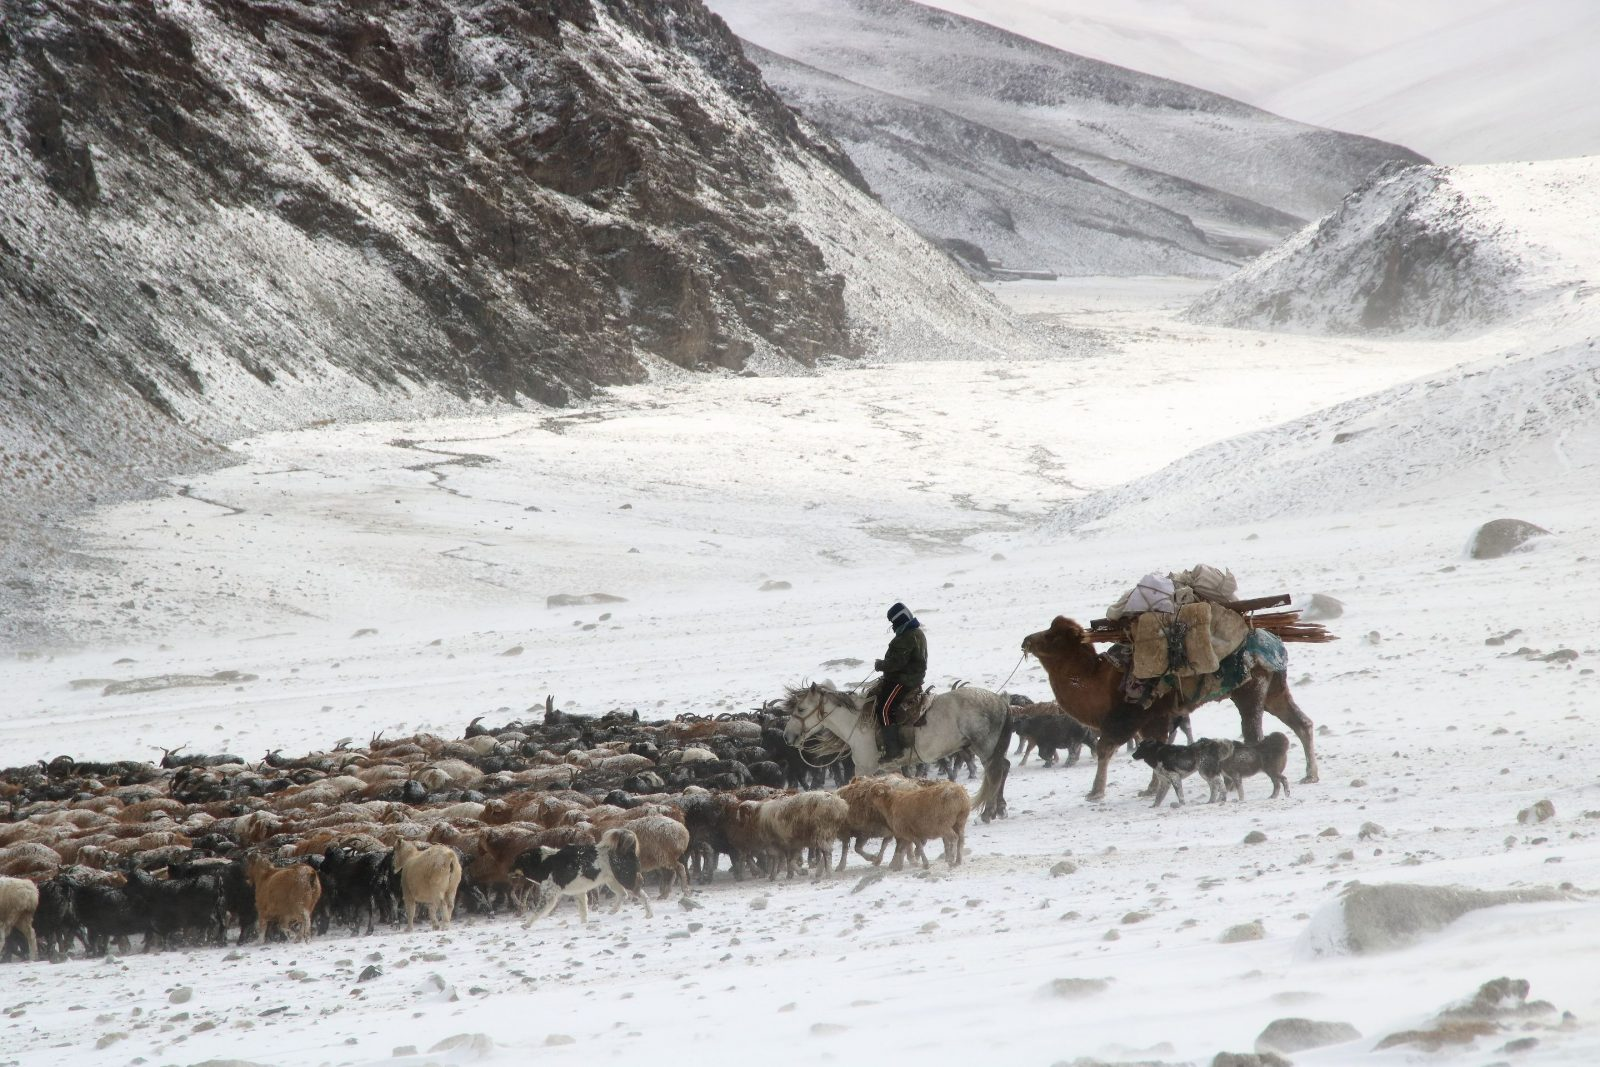 A herd of goats in the snow in Mongolia.